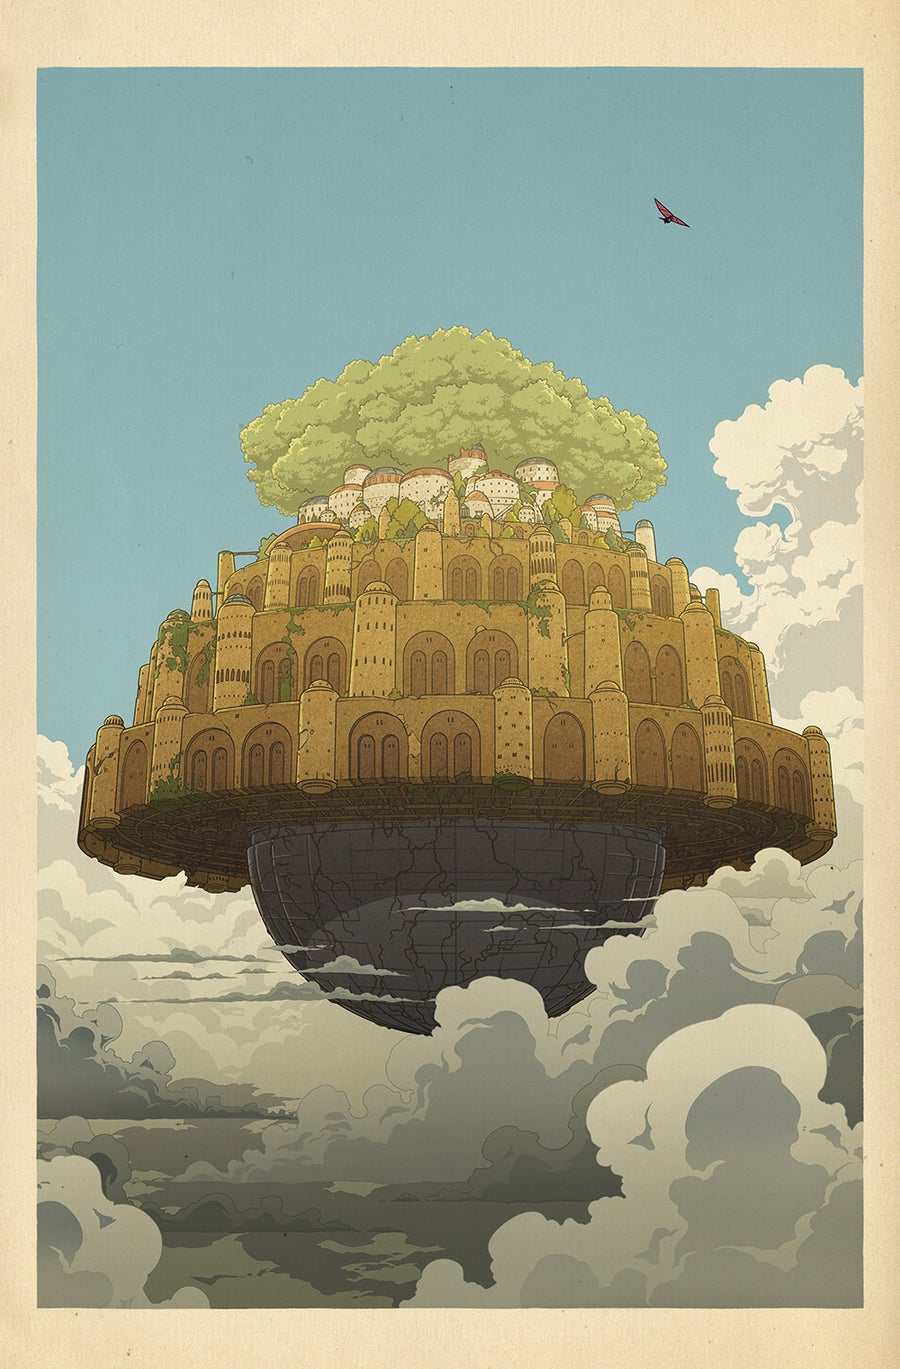 Image of The Castle in the Sky